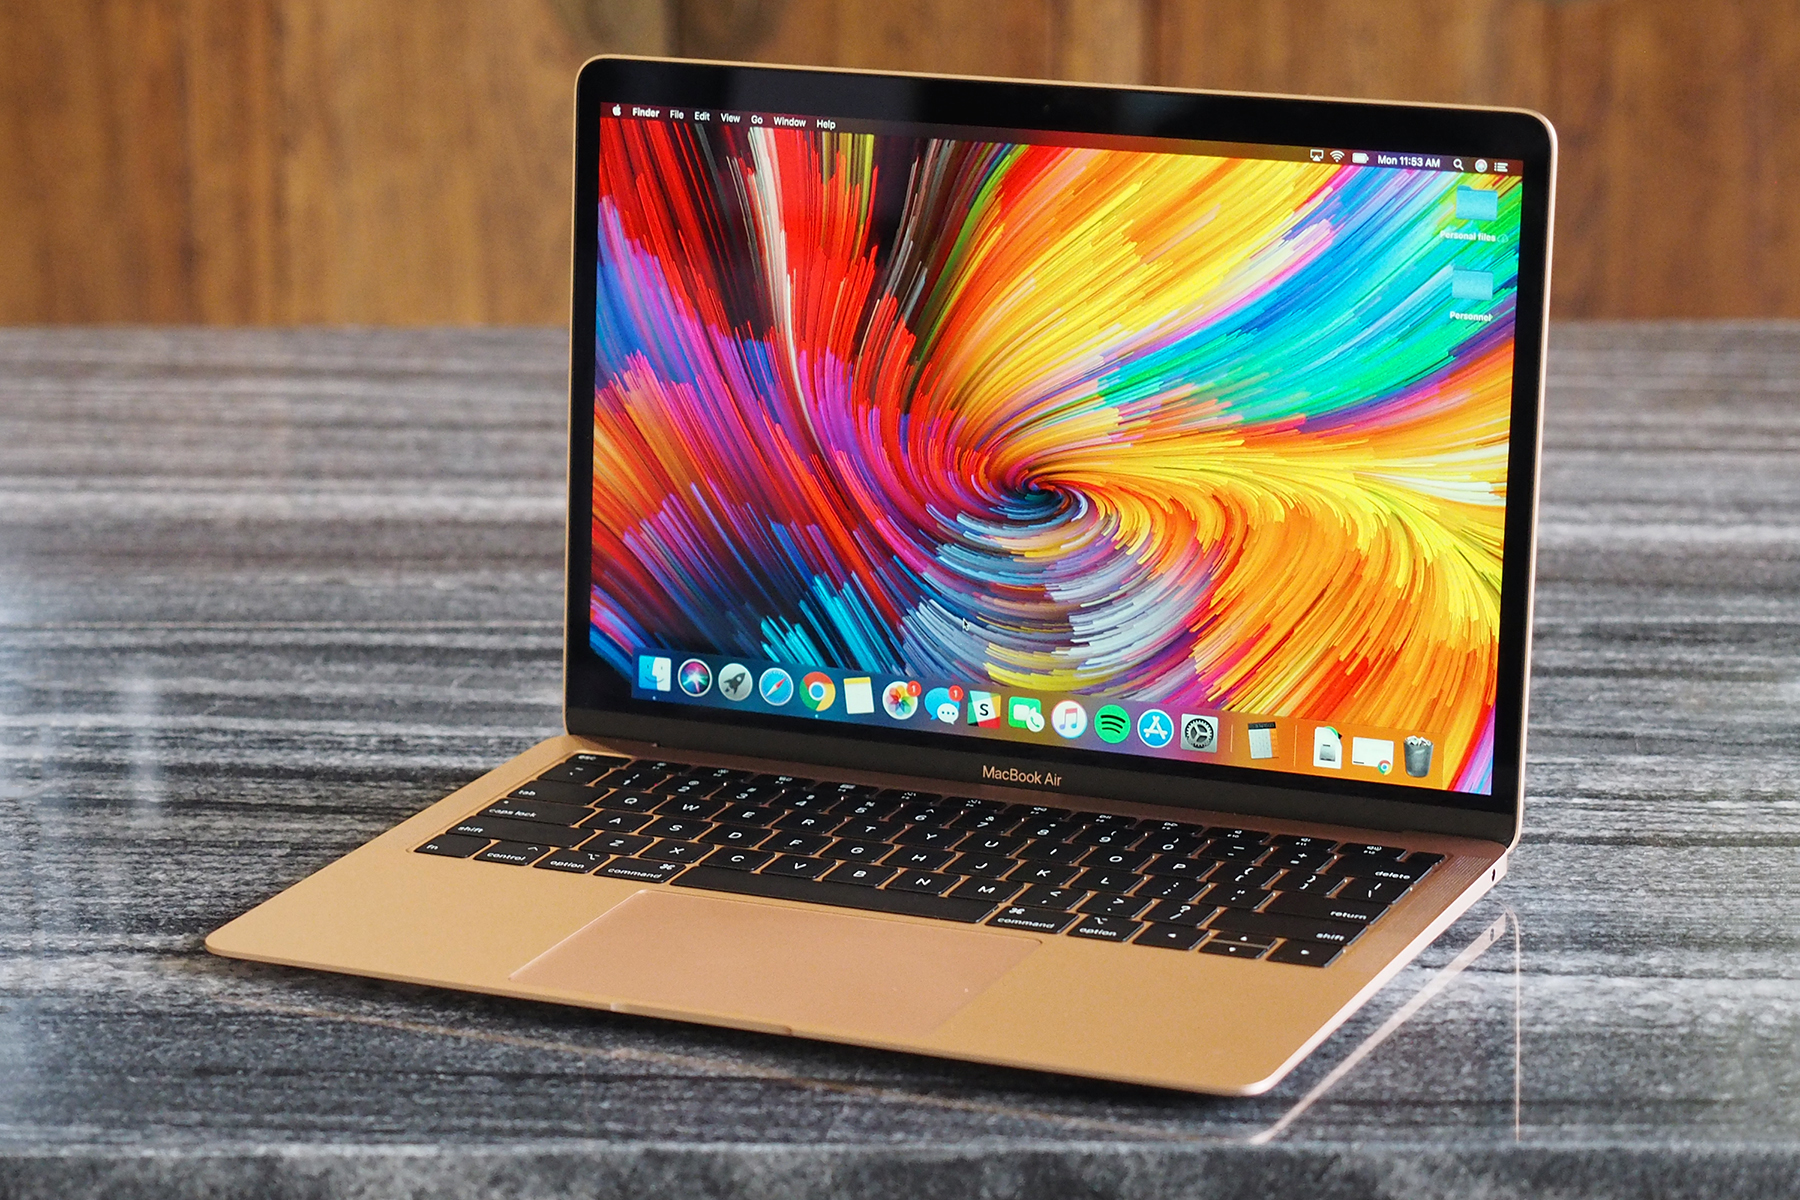 A weekend with the new MacBook Air